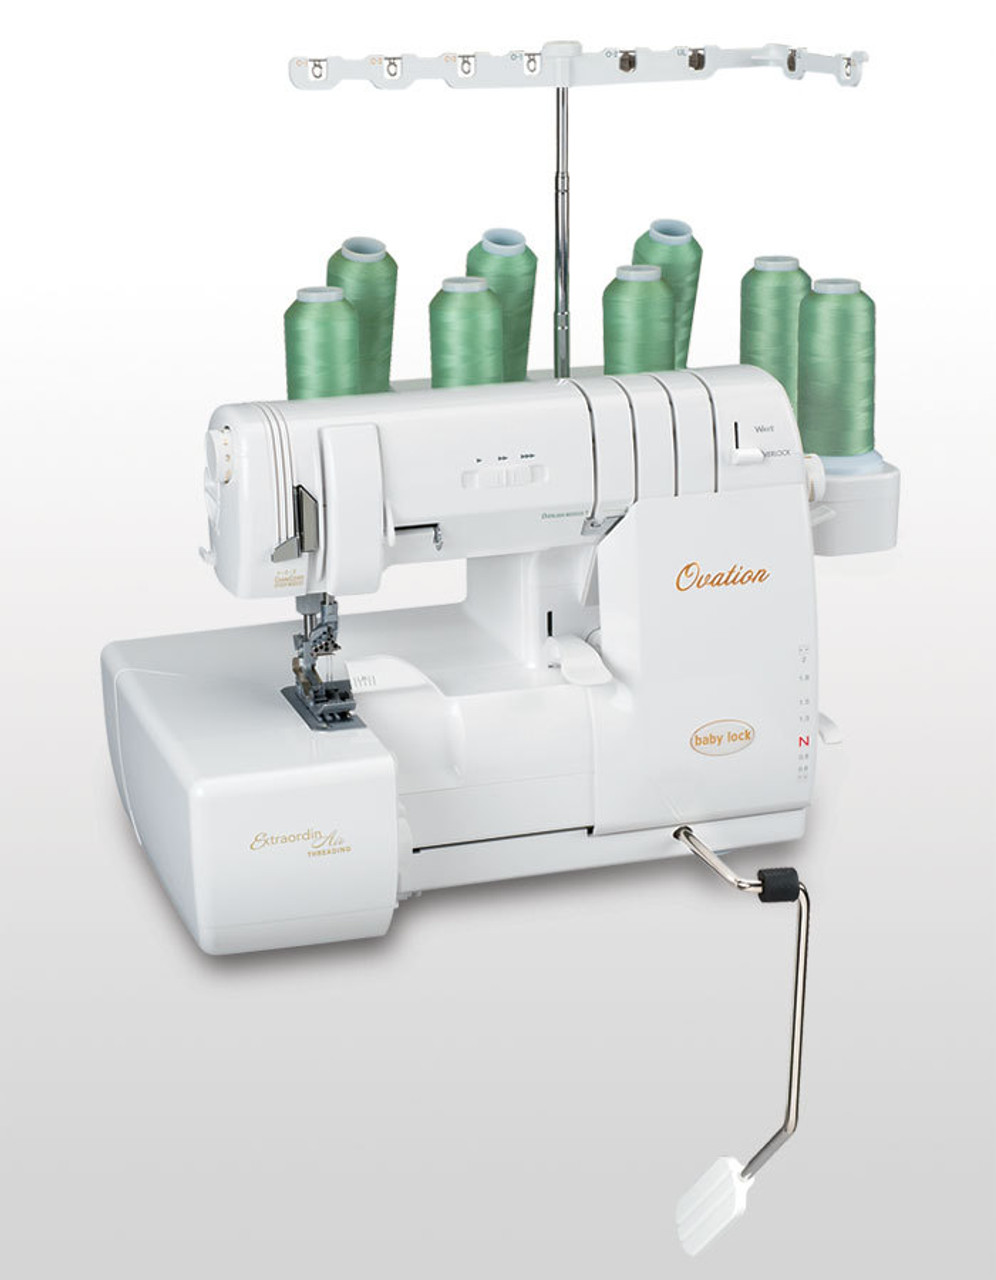 Ovation Overlocker EX DEMO MACHINE